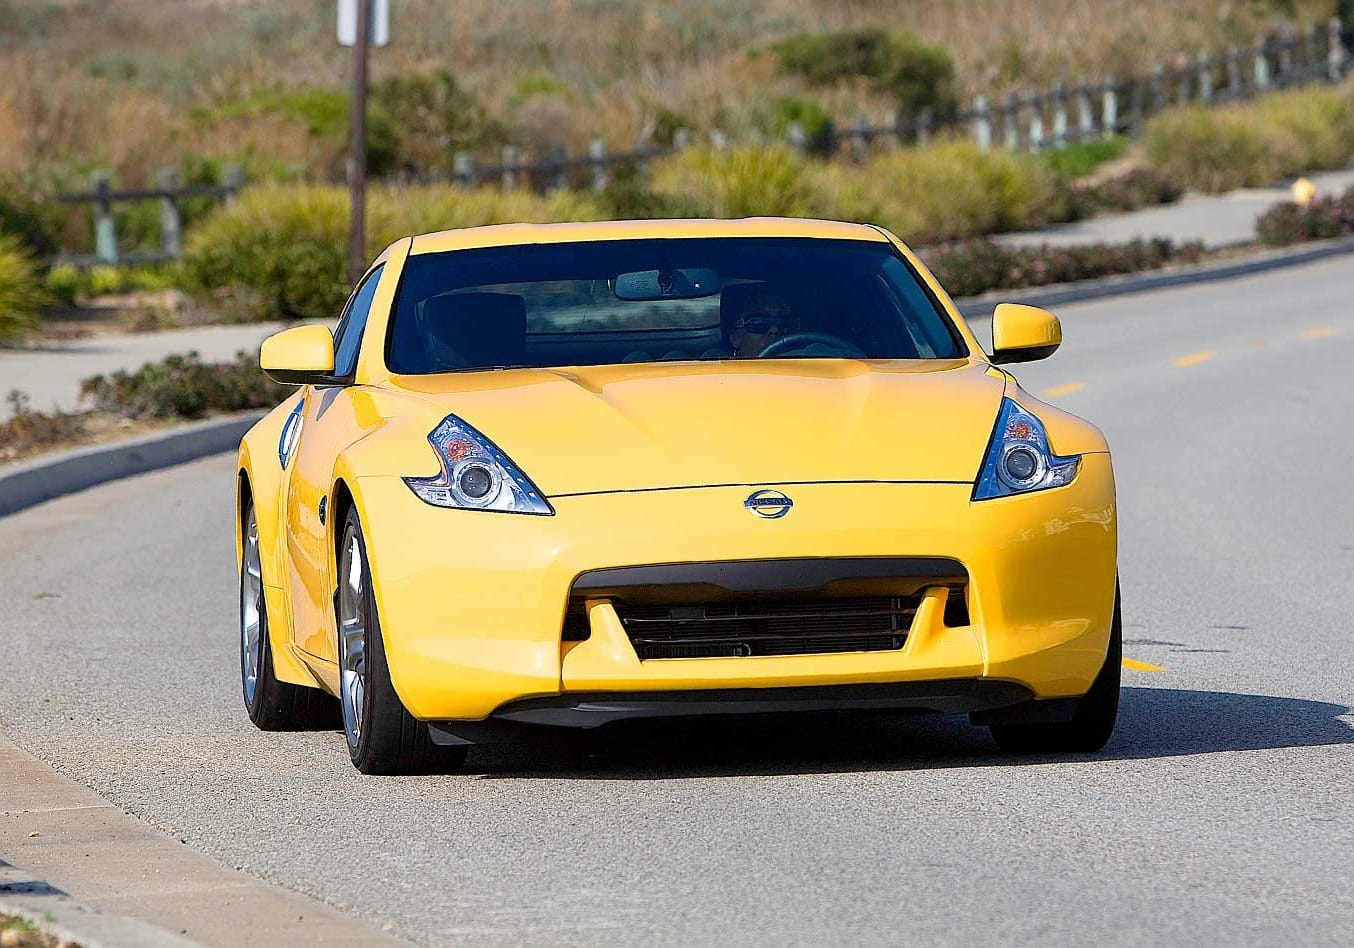 2008 Nissan 370Z review